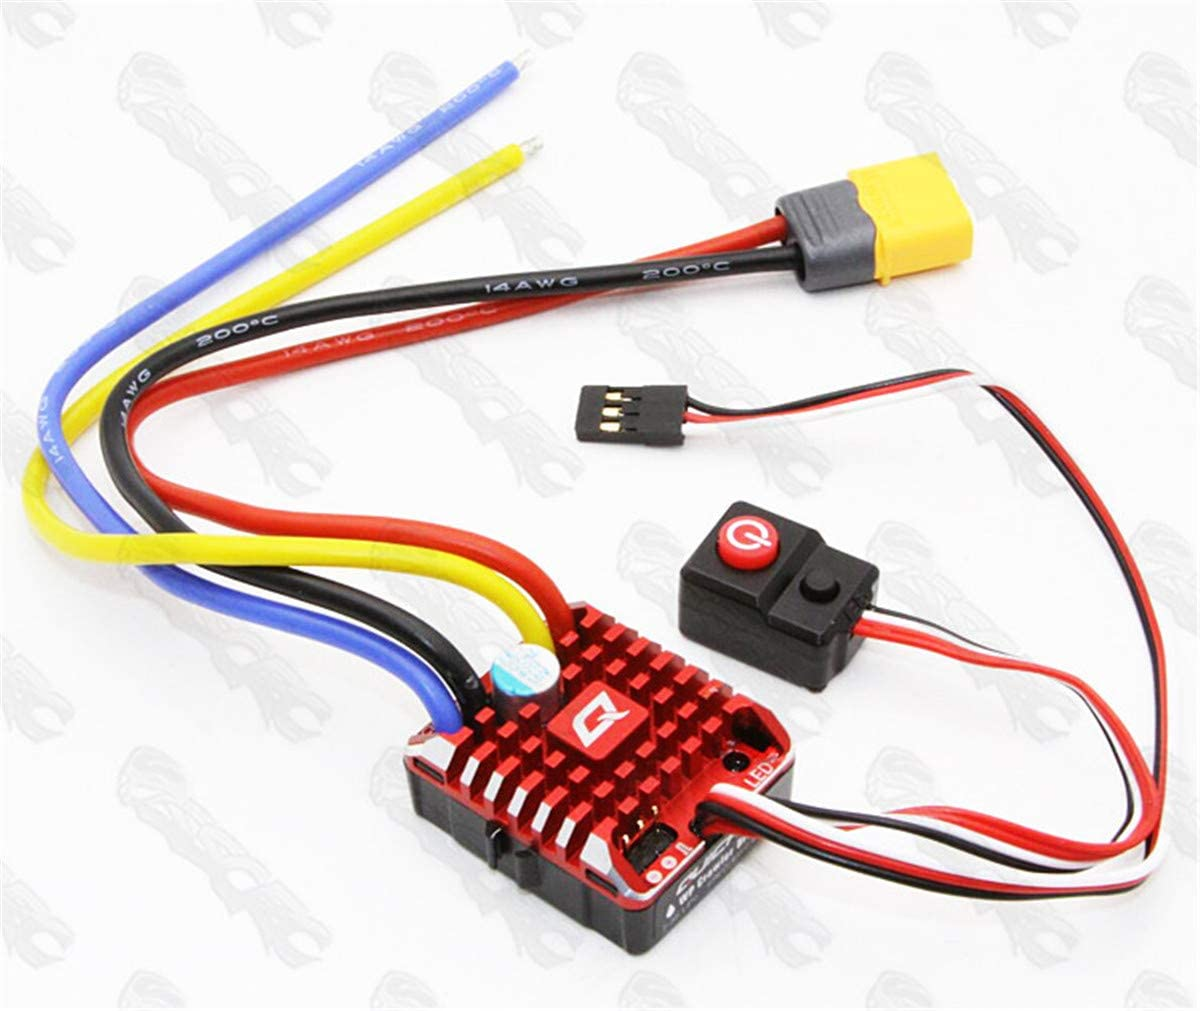 Hobbywing Funshobby QuicRun 1080 Brushed Waterproof 80A ESC Speed Controller RC Crawler with Program Box LED BEC XT60-Plug RC Car 1:10 30112750